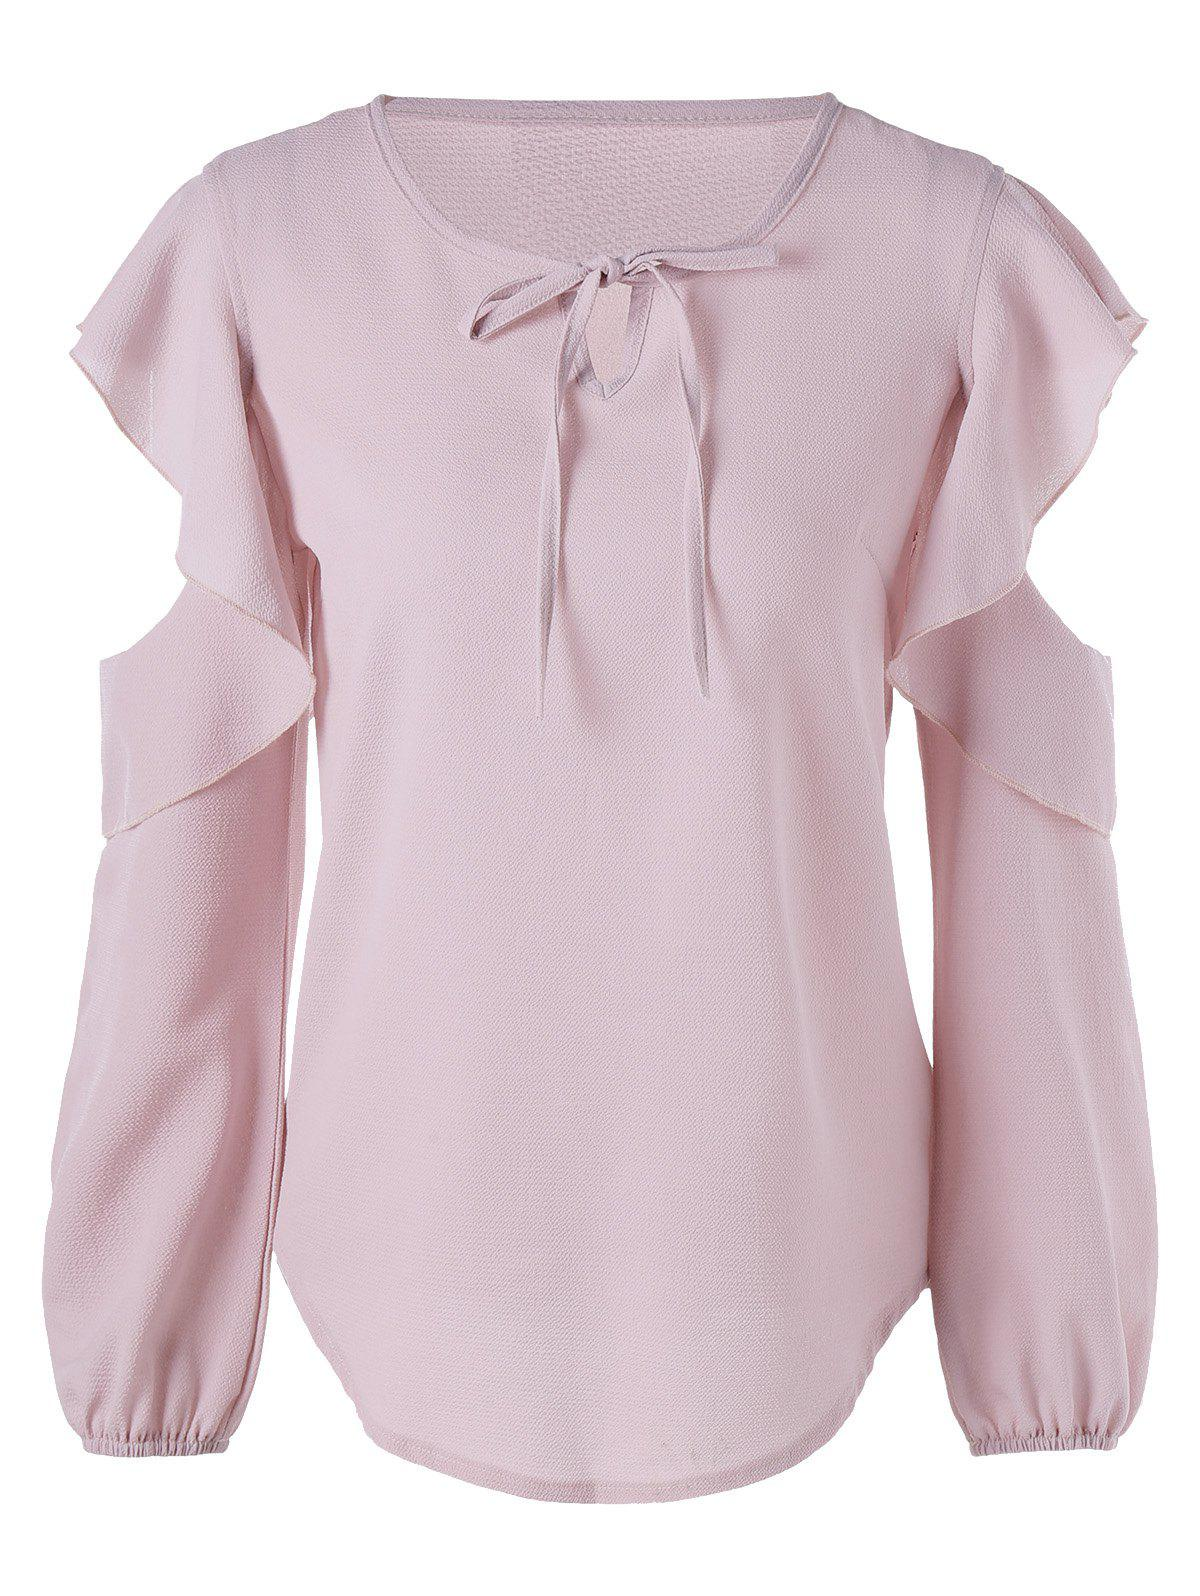 Cold Shoulder Flounced Chiffon Blouse - PINK 2XL